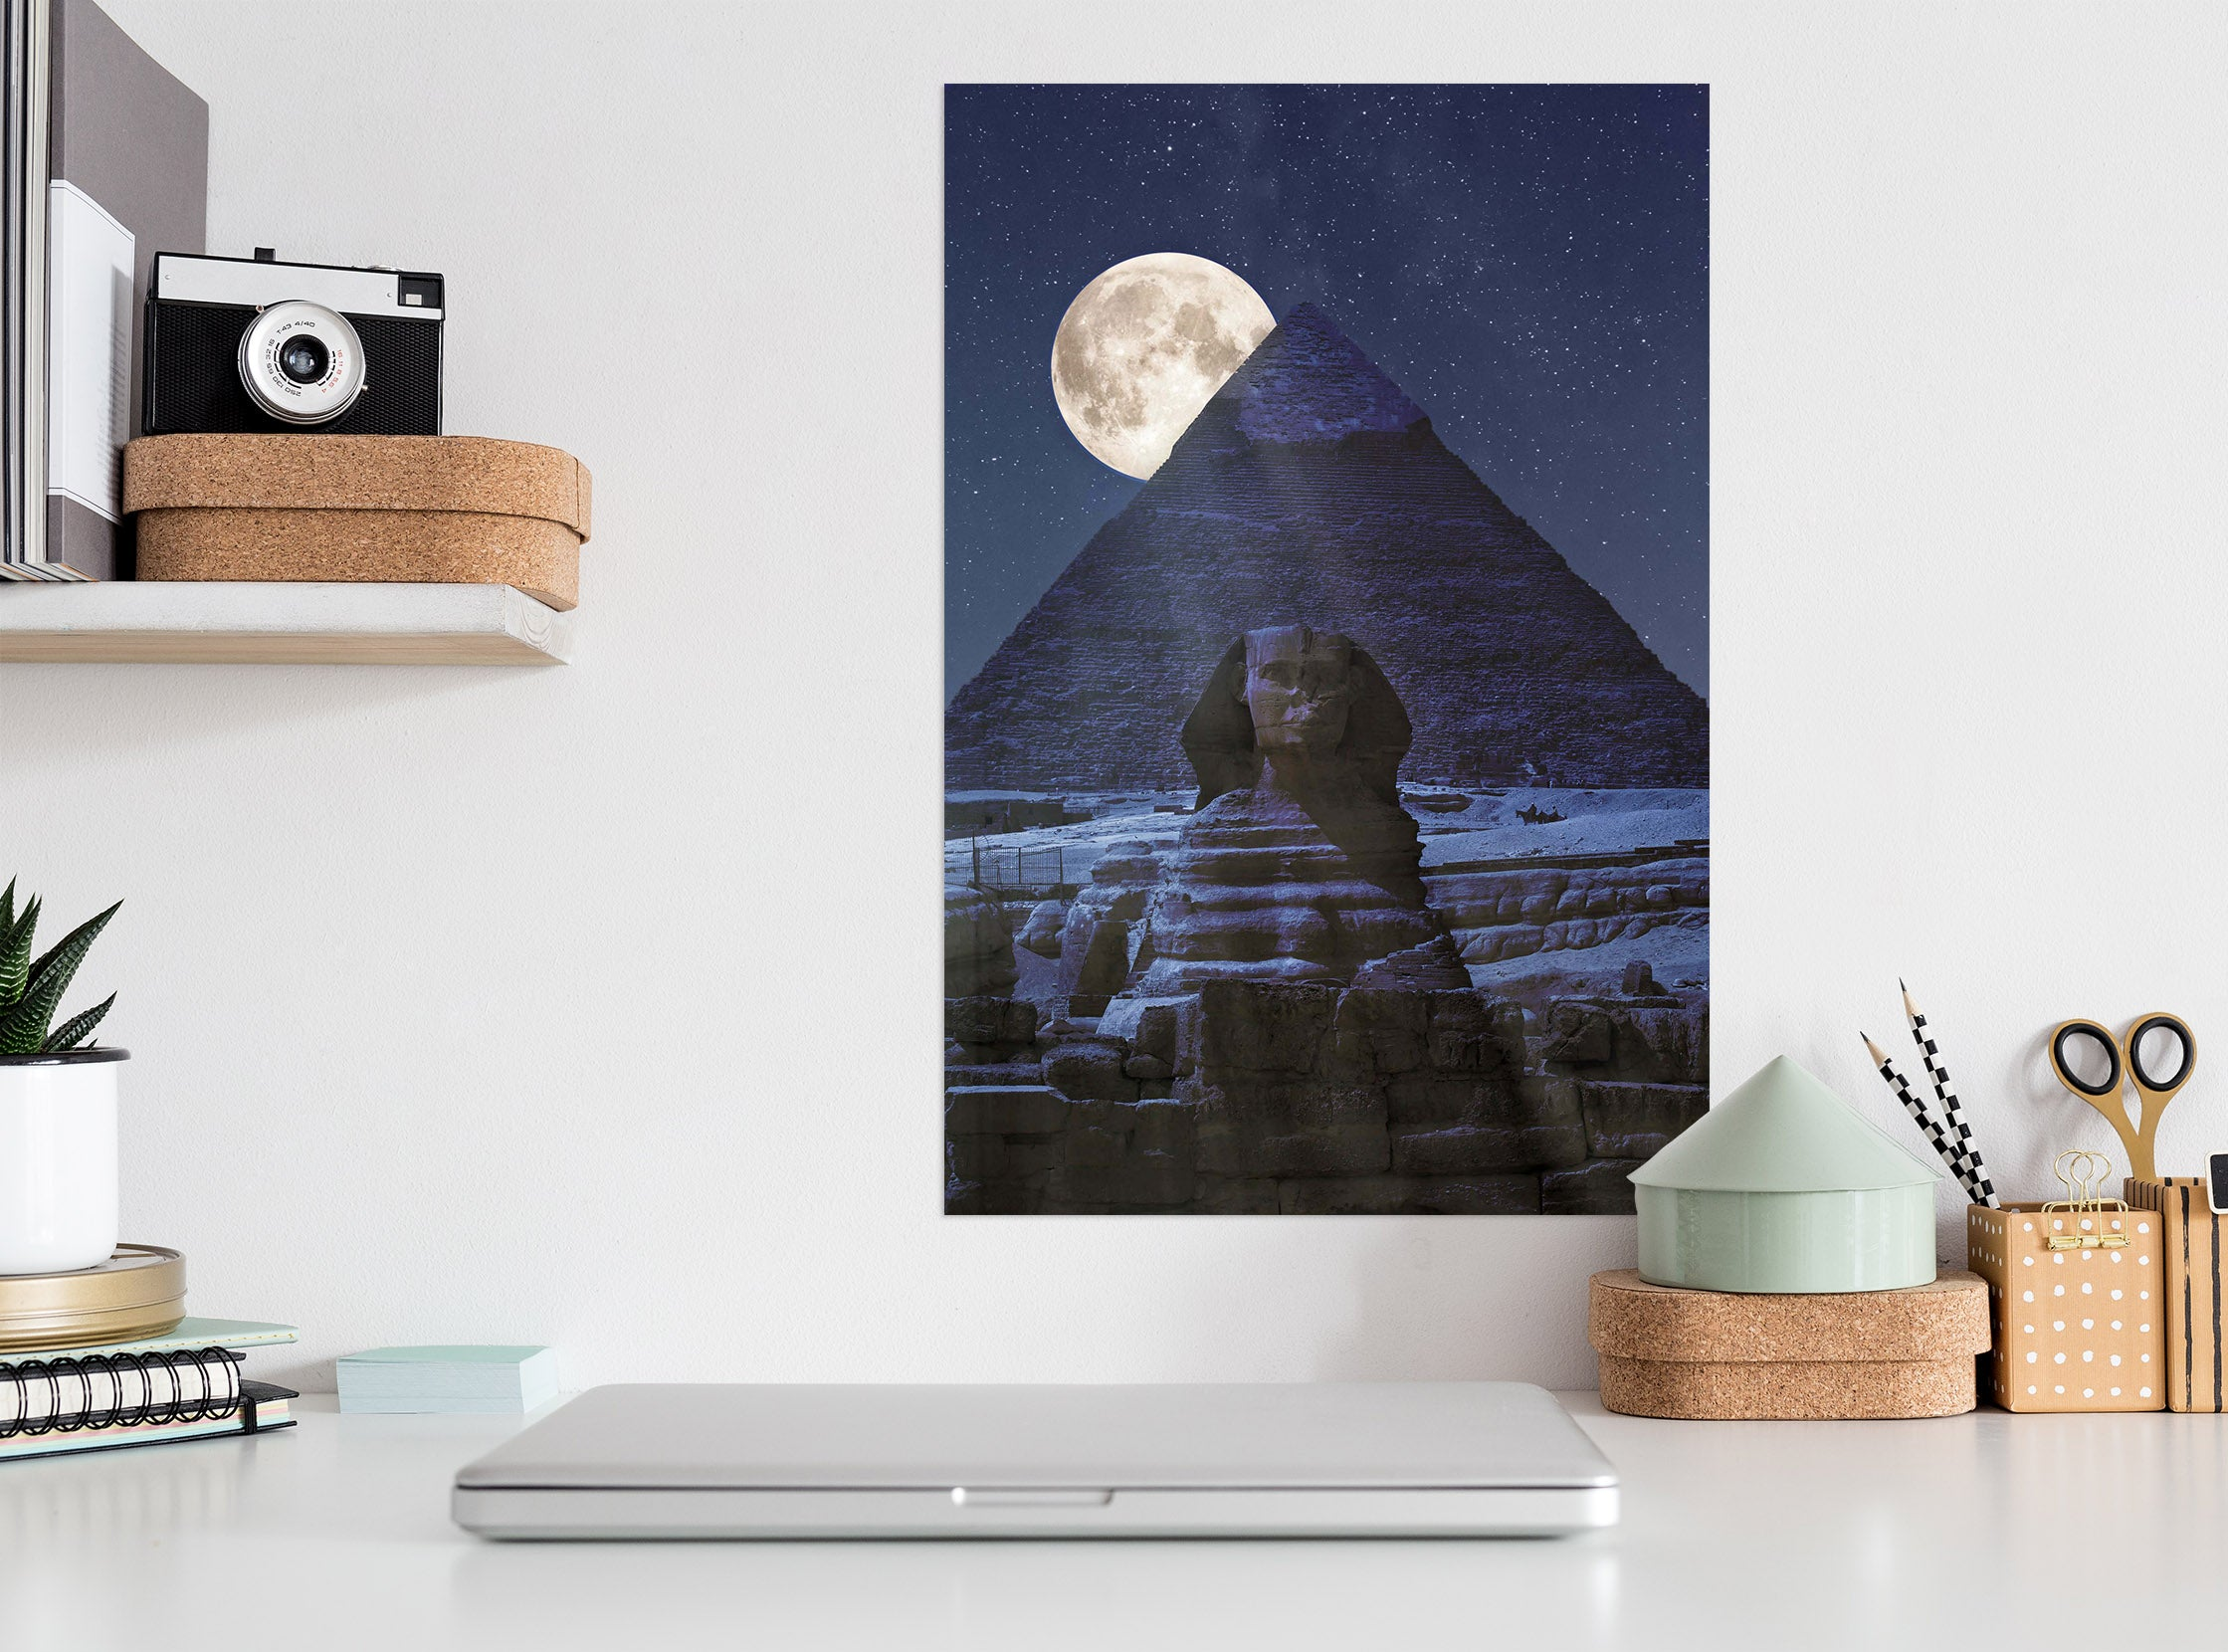 3D Valley Moon 235 Marco Carmassi Wall Sticker